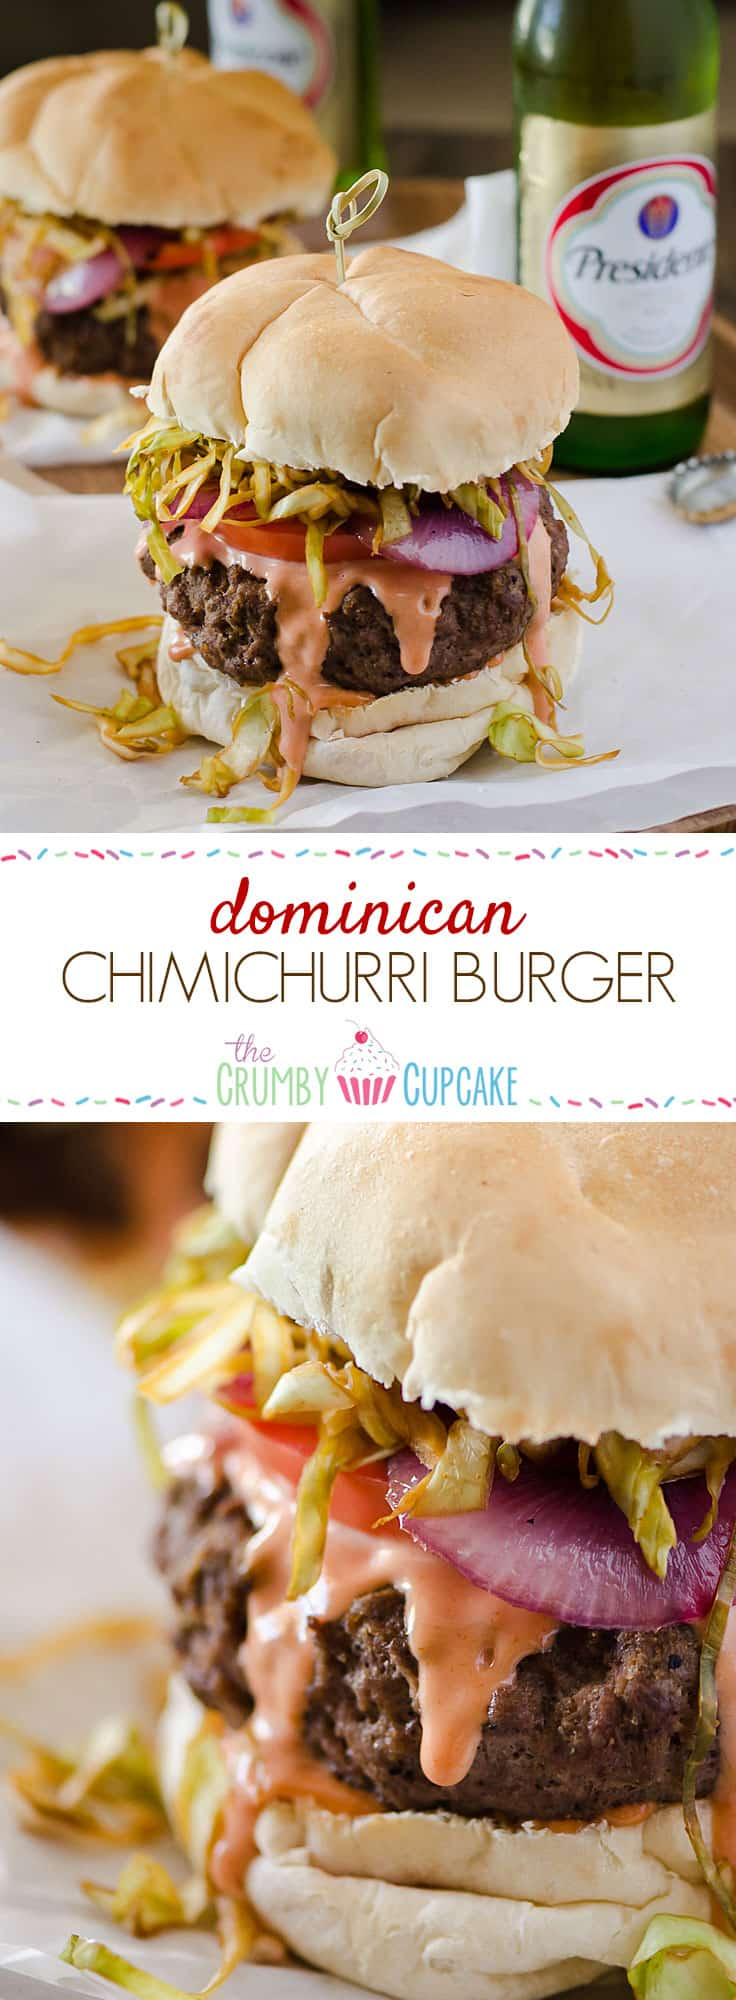 A saucy, simply seasoned burger, topped with sauteed cabbage, tomato and onion, the Chimichurri Burger is Dominican street food at its finest!